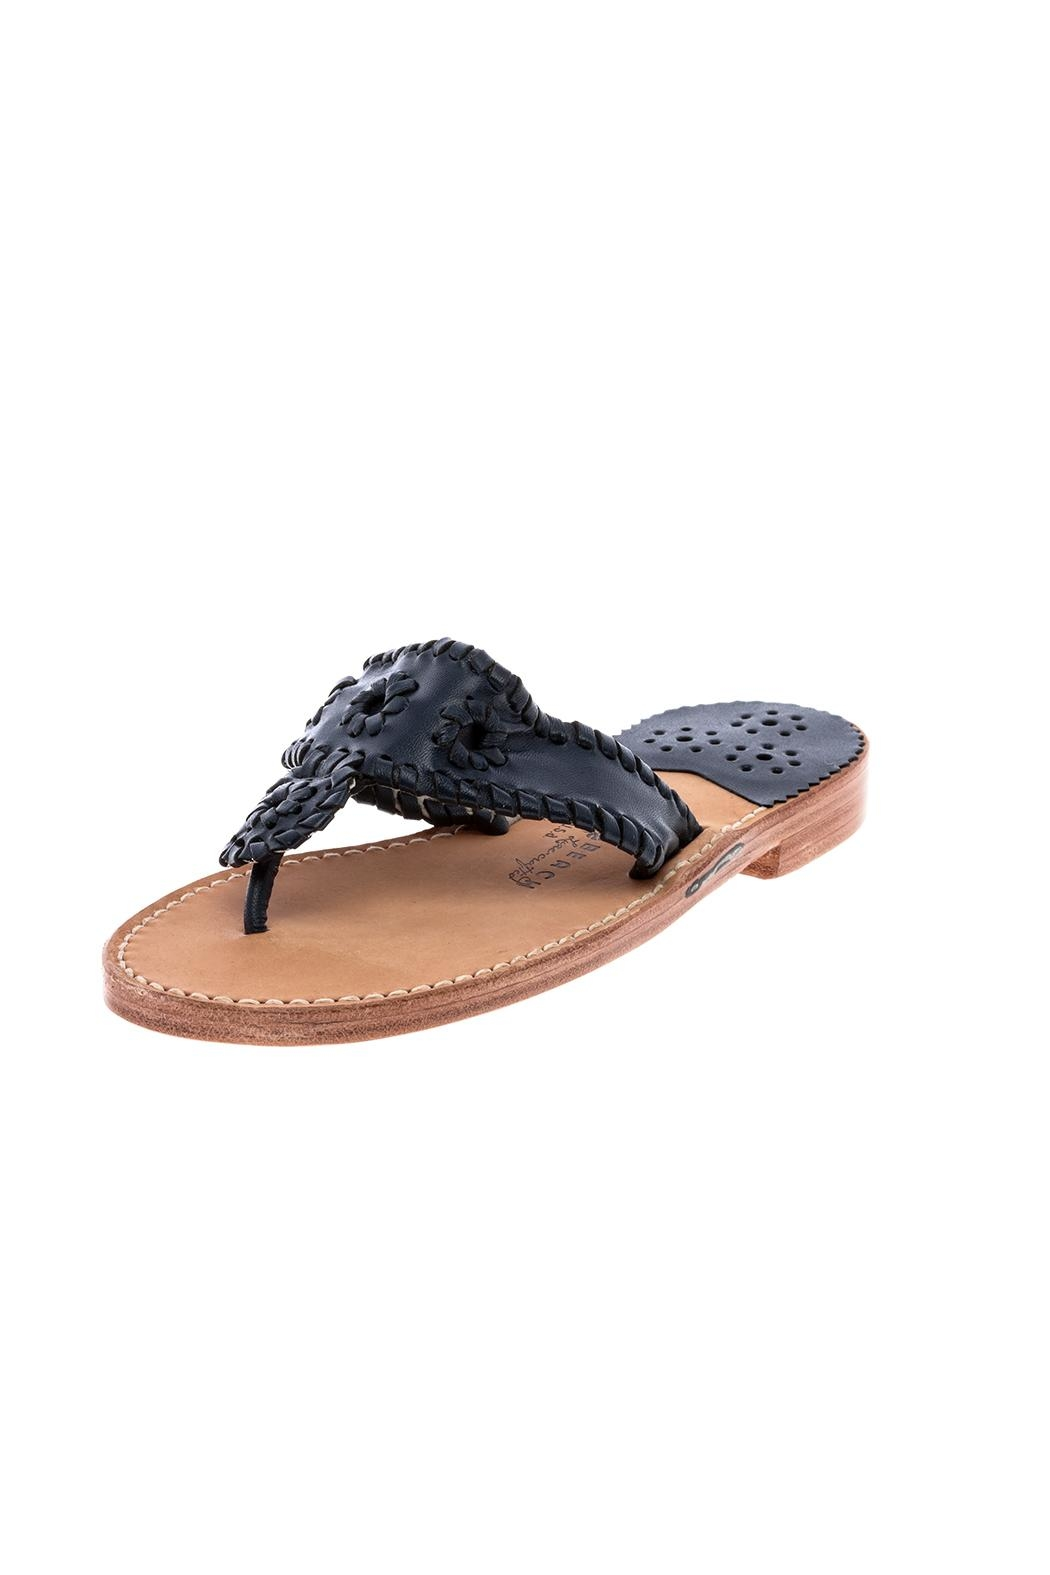 Palm Beach Collection Leather Sandals - Flipflops - Main Image